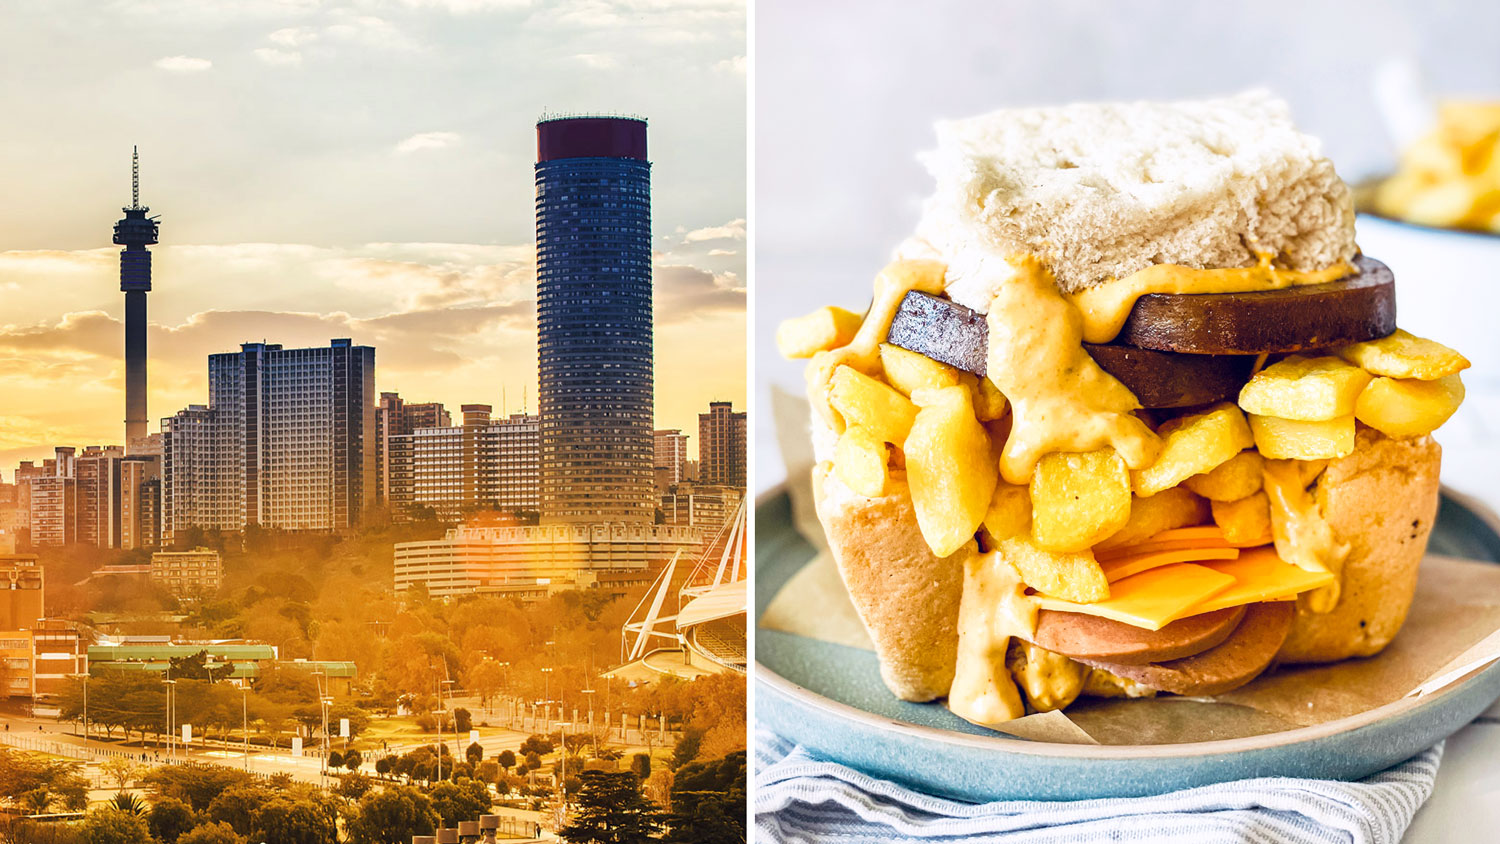 The story behind the classic South African dish, the kota sandwich